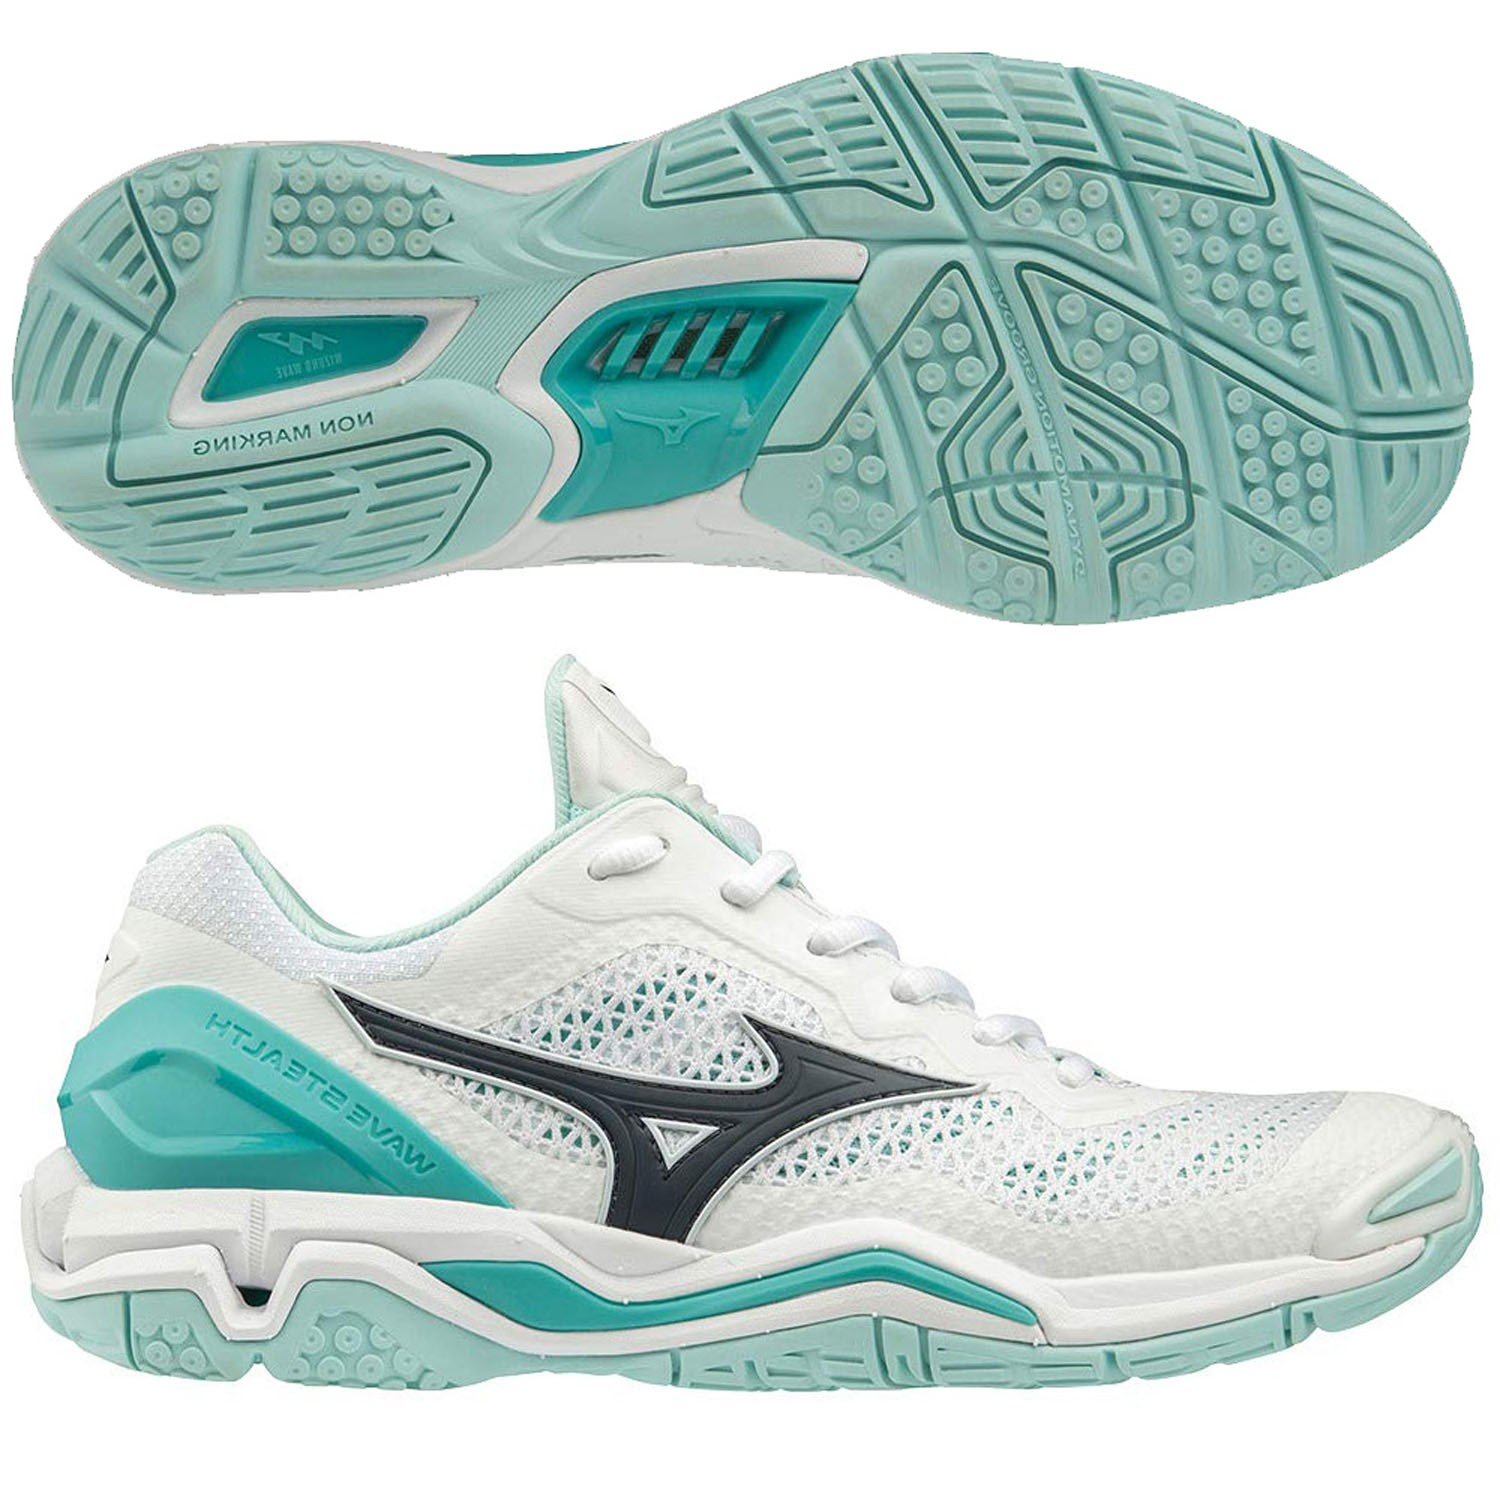 Chaussures Wave Stealth 5 Femme